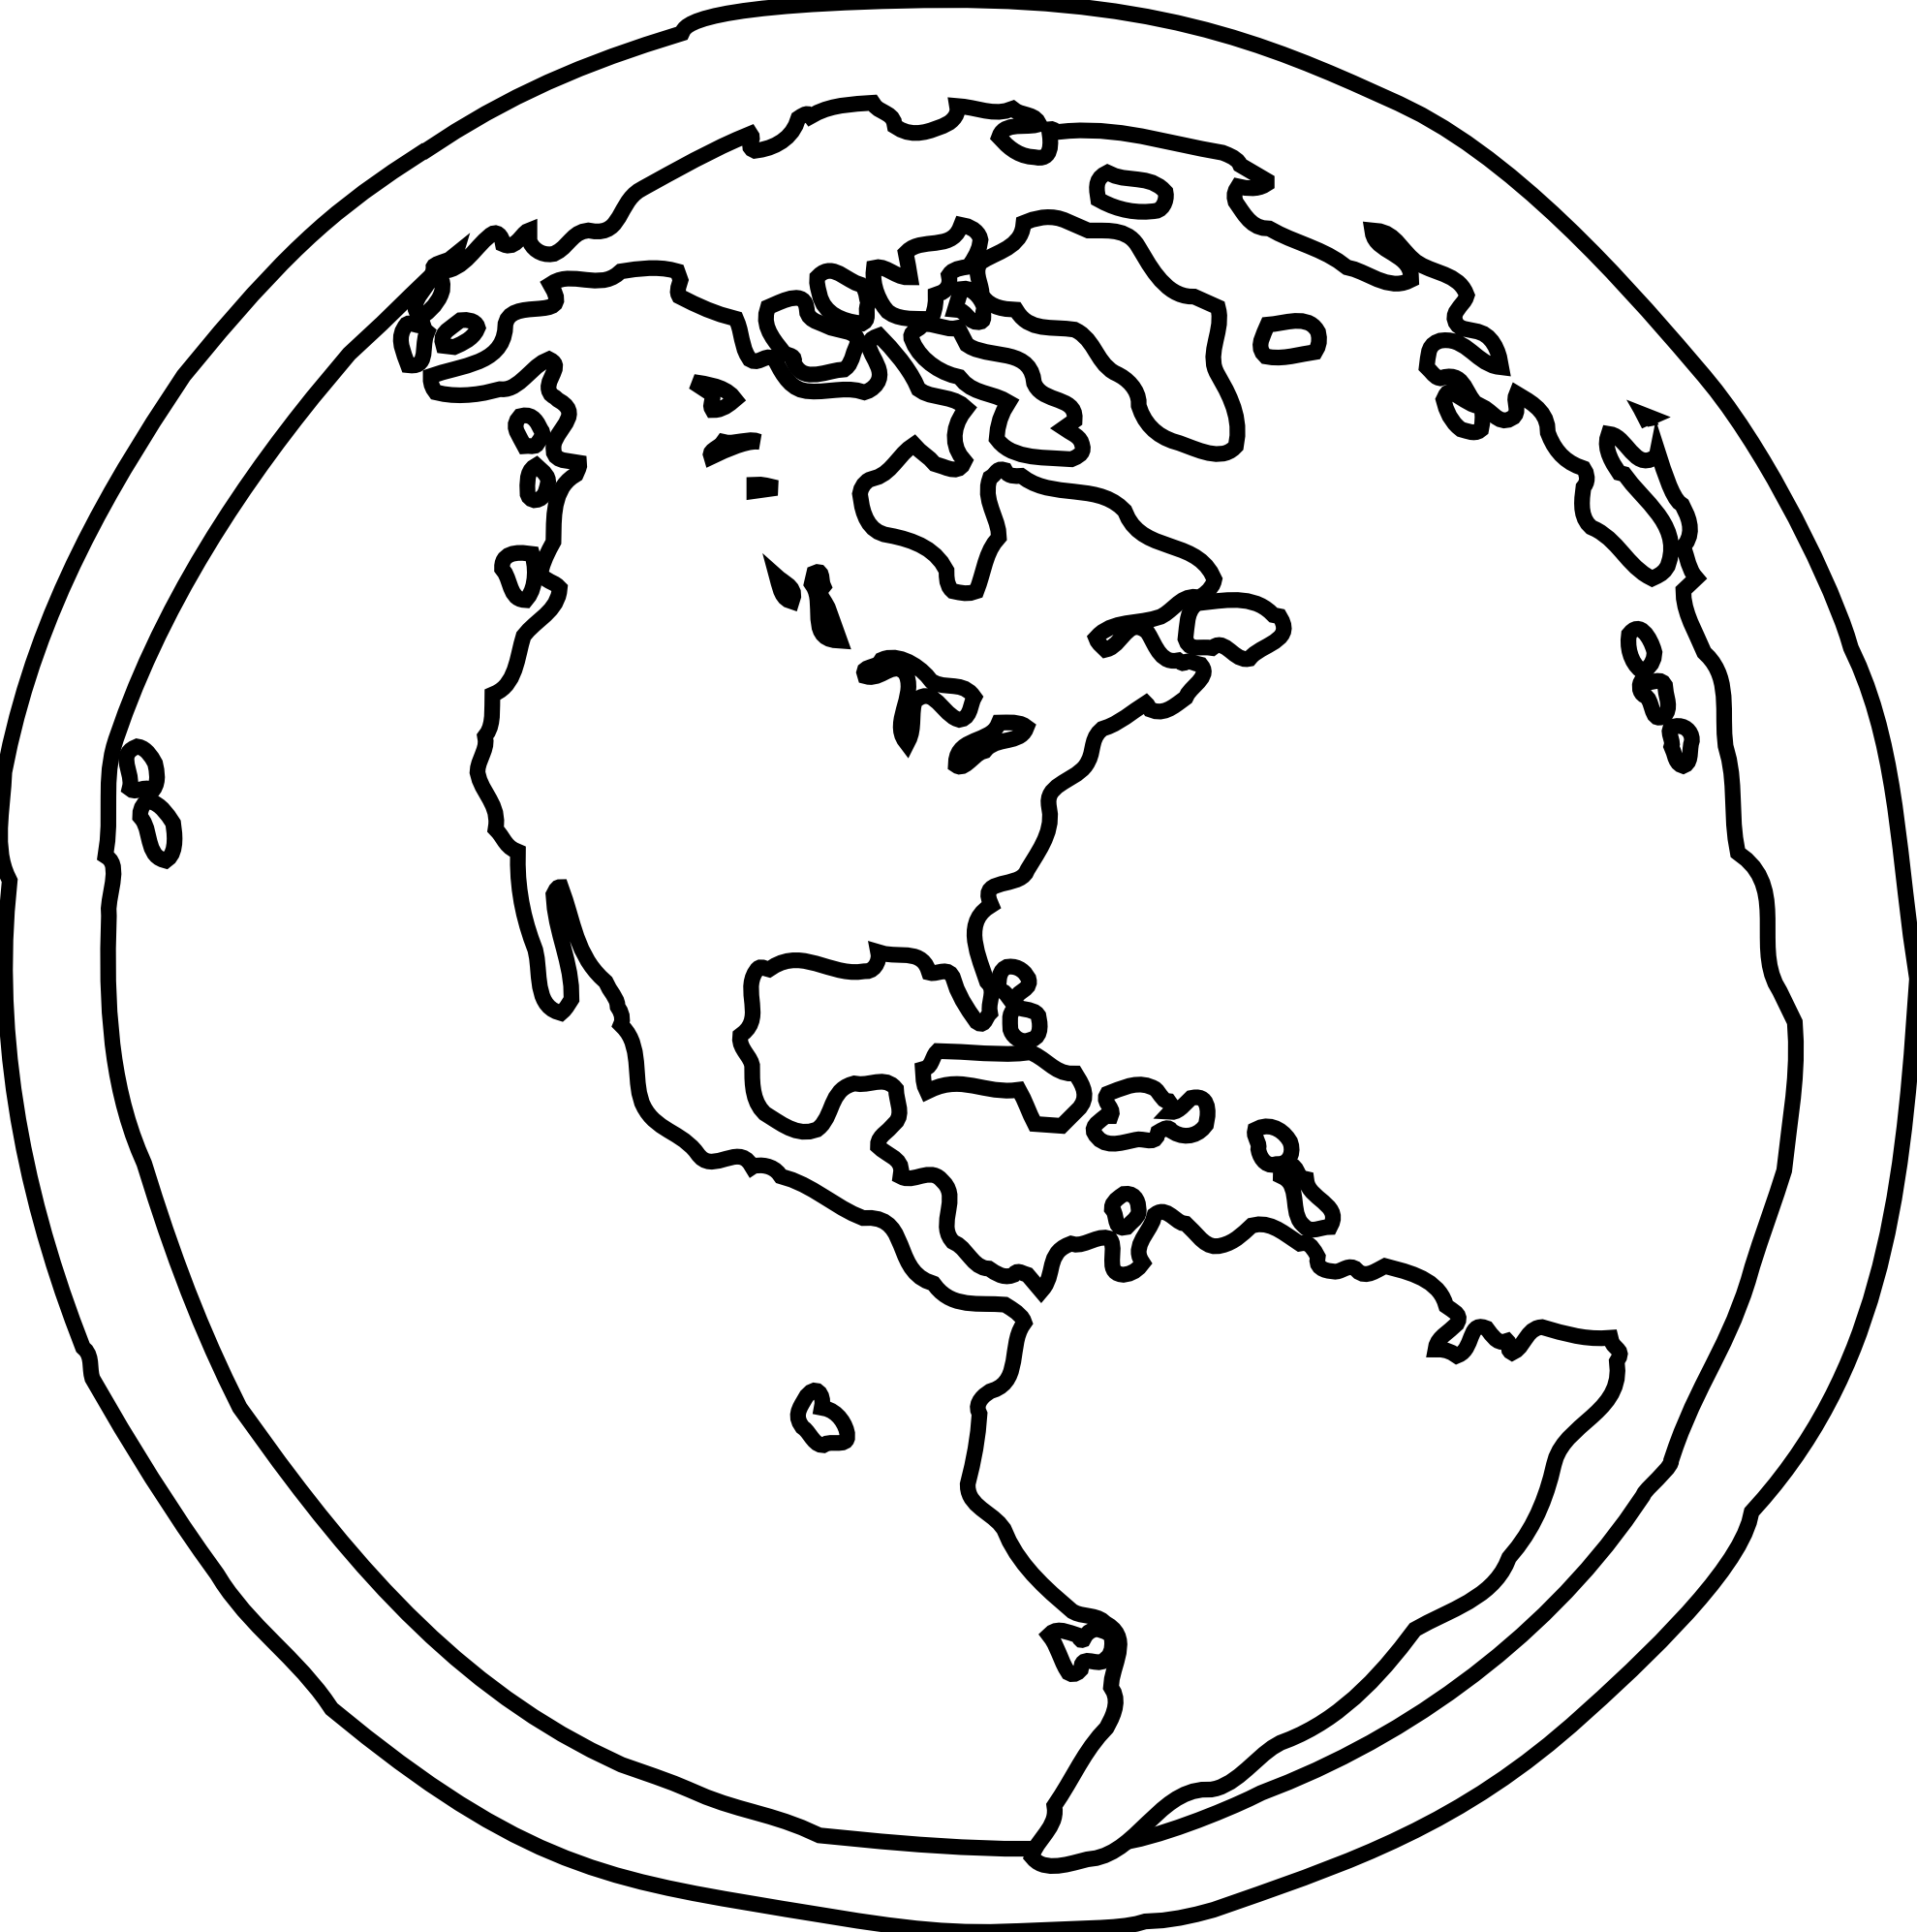 planet earth clipart black and white -#main